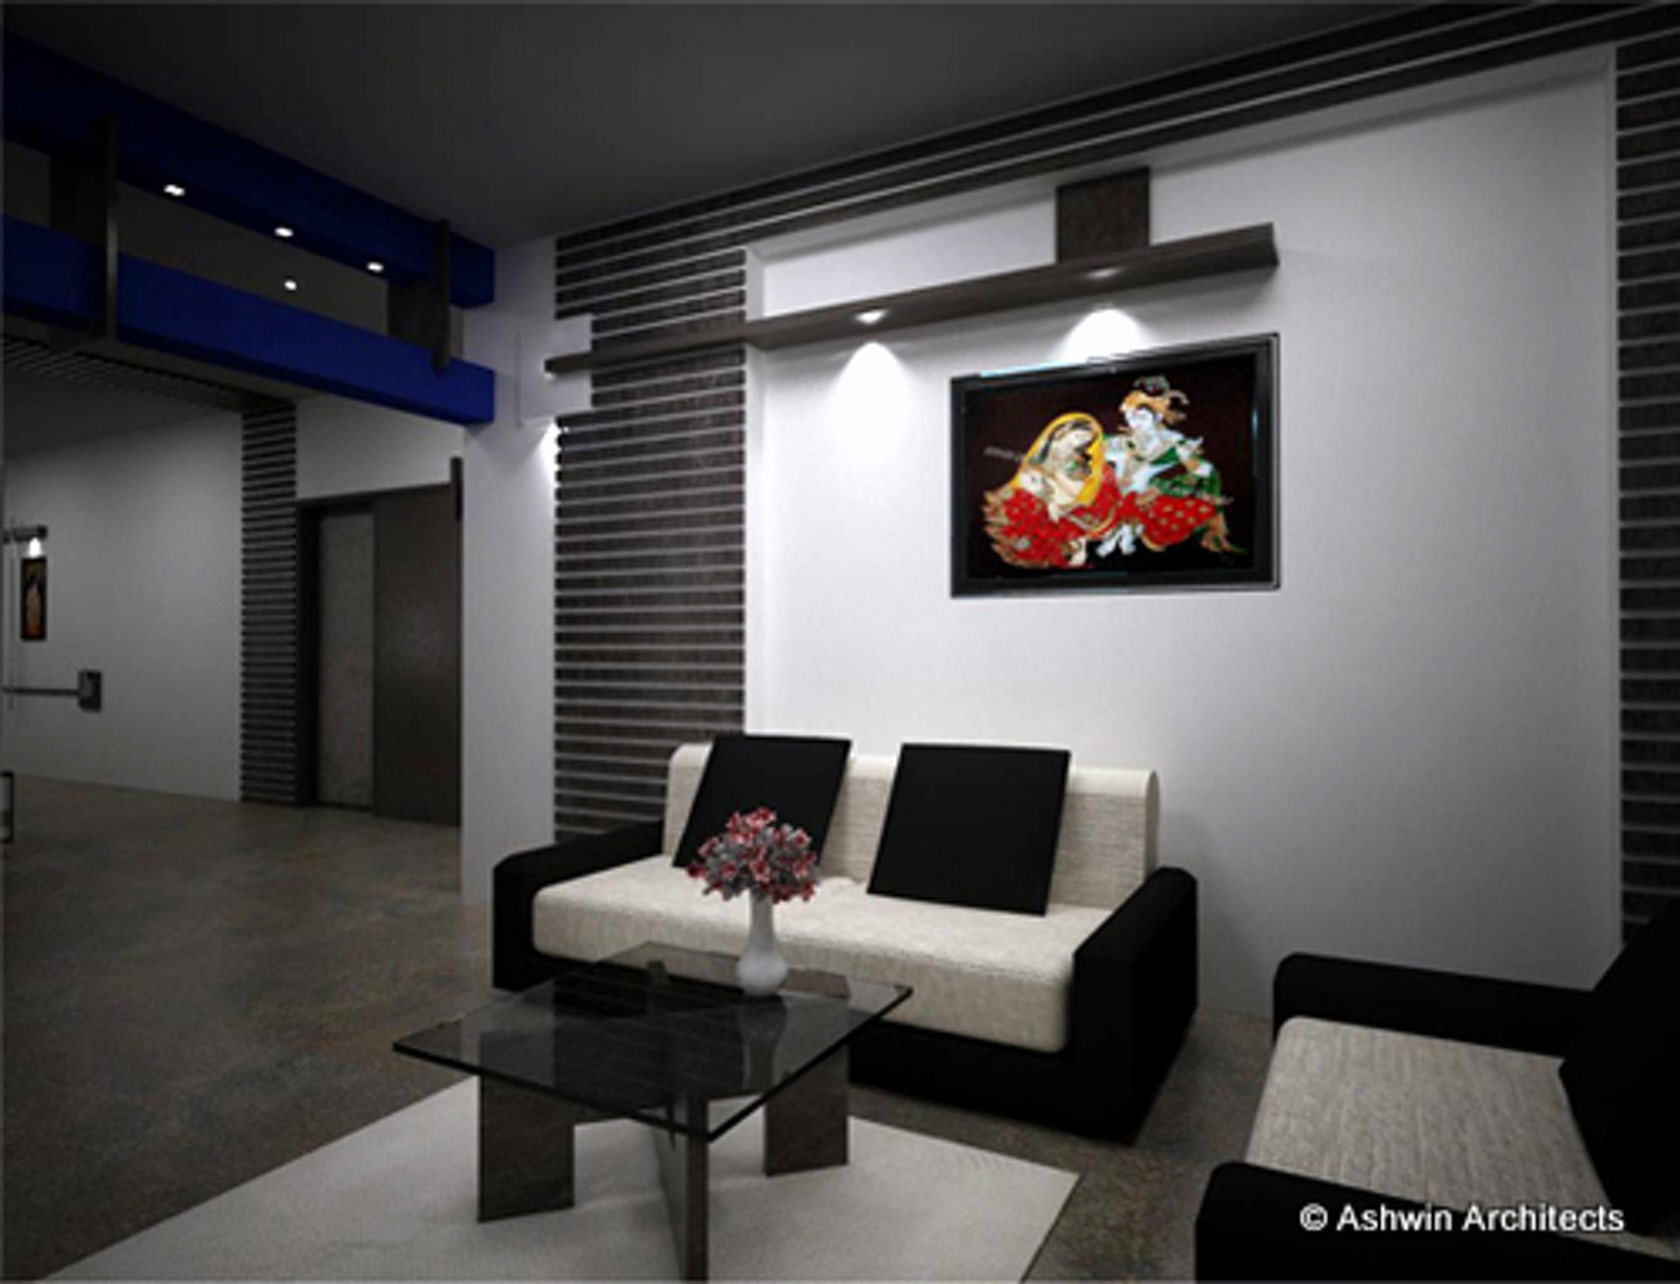 Udai s 3bhk apartment interior designs in bangalore for Living room designs india